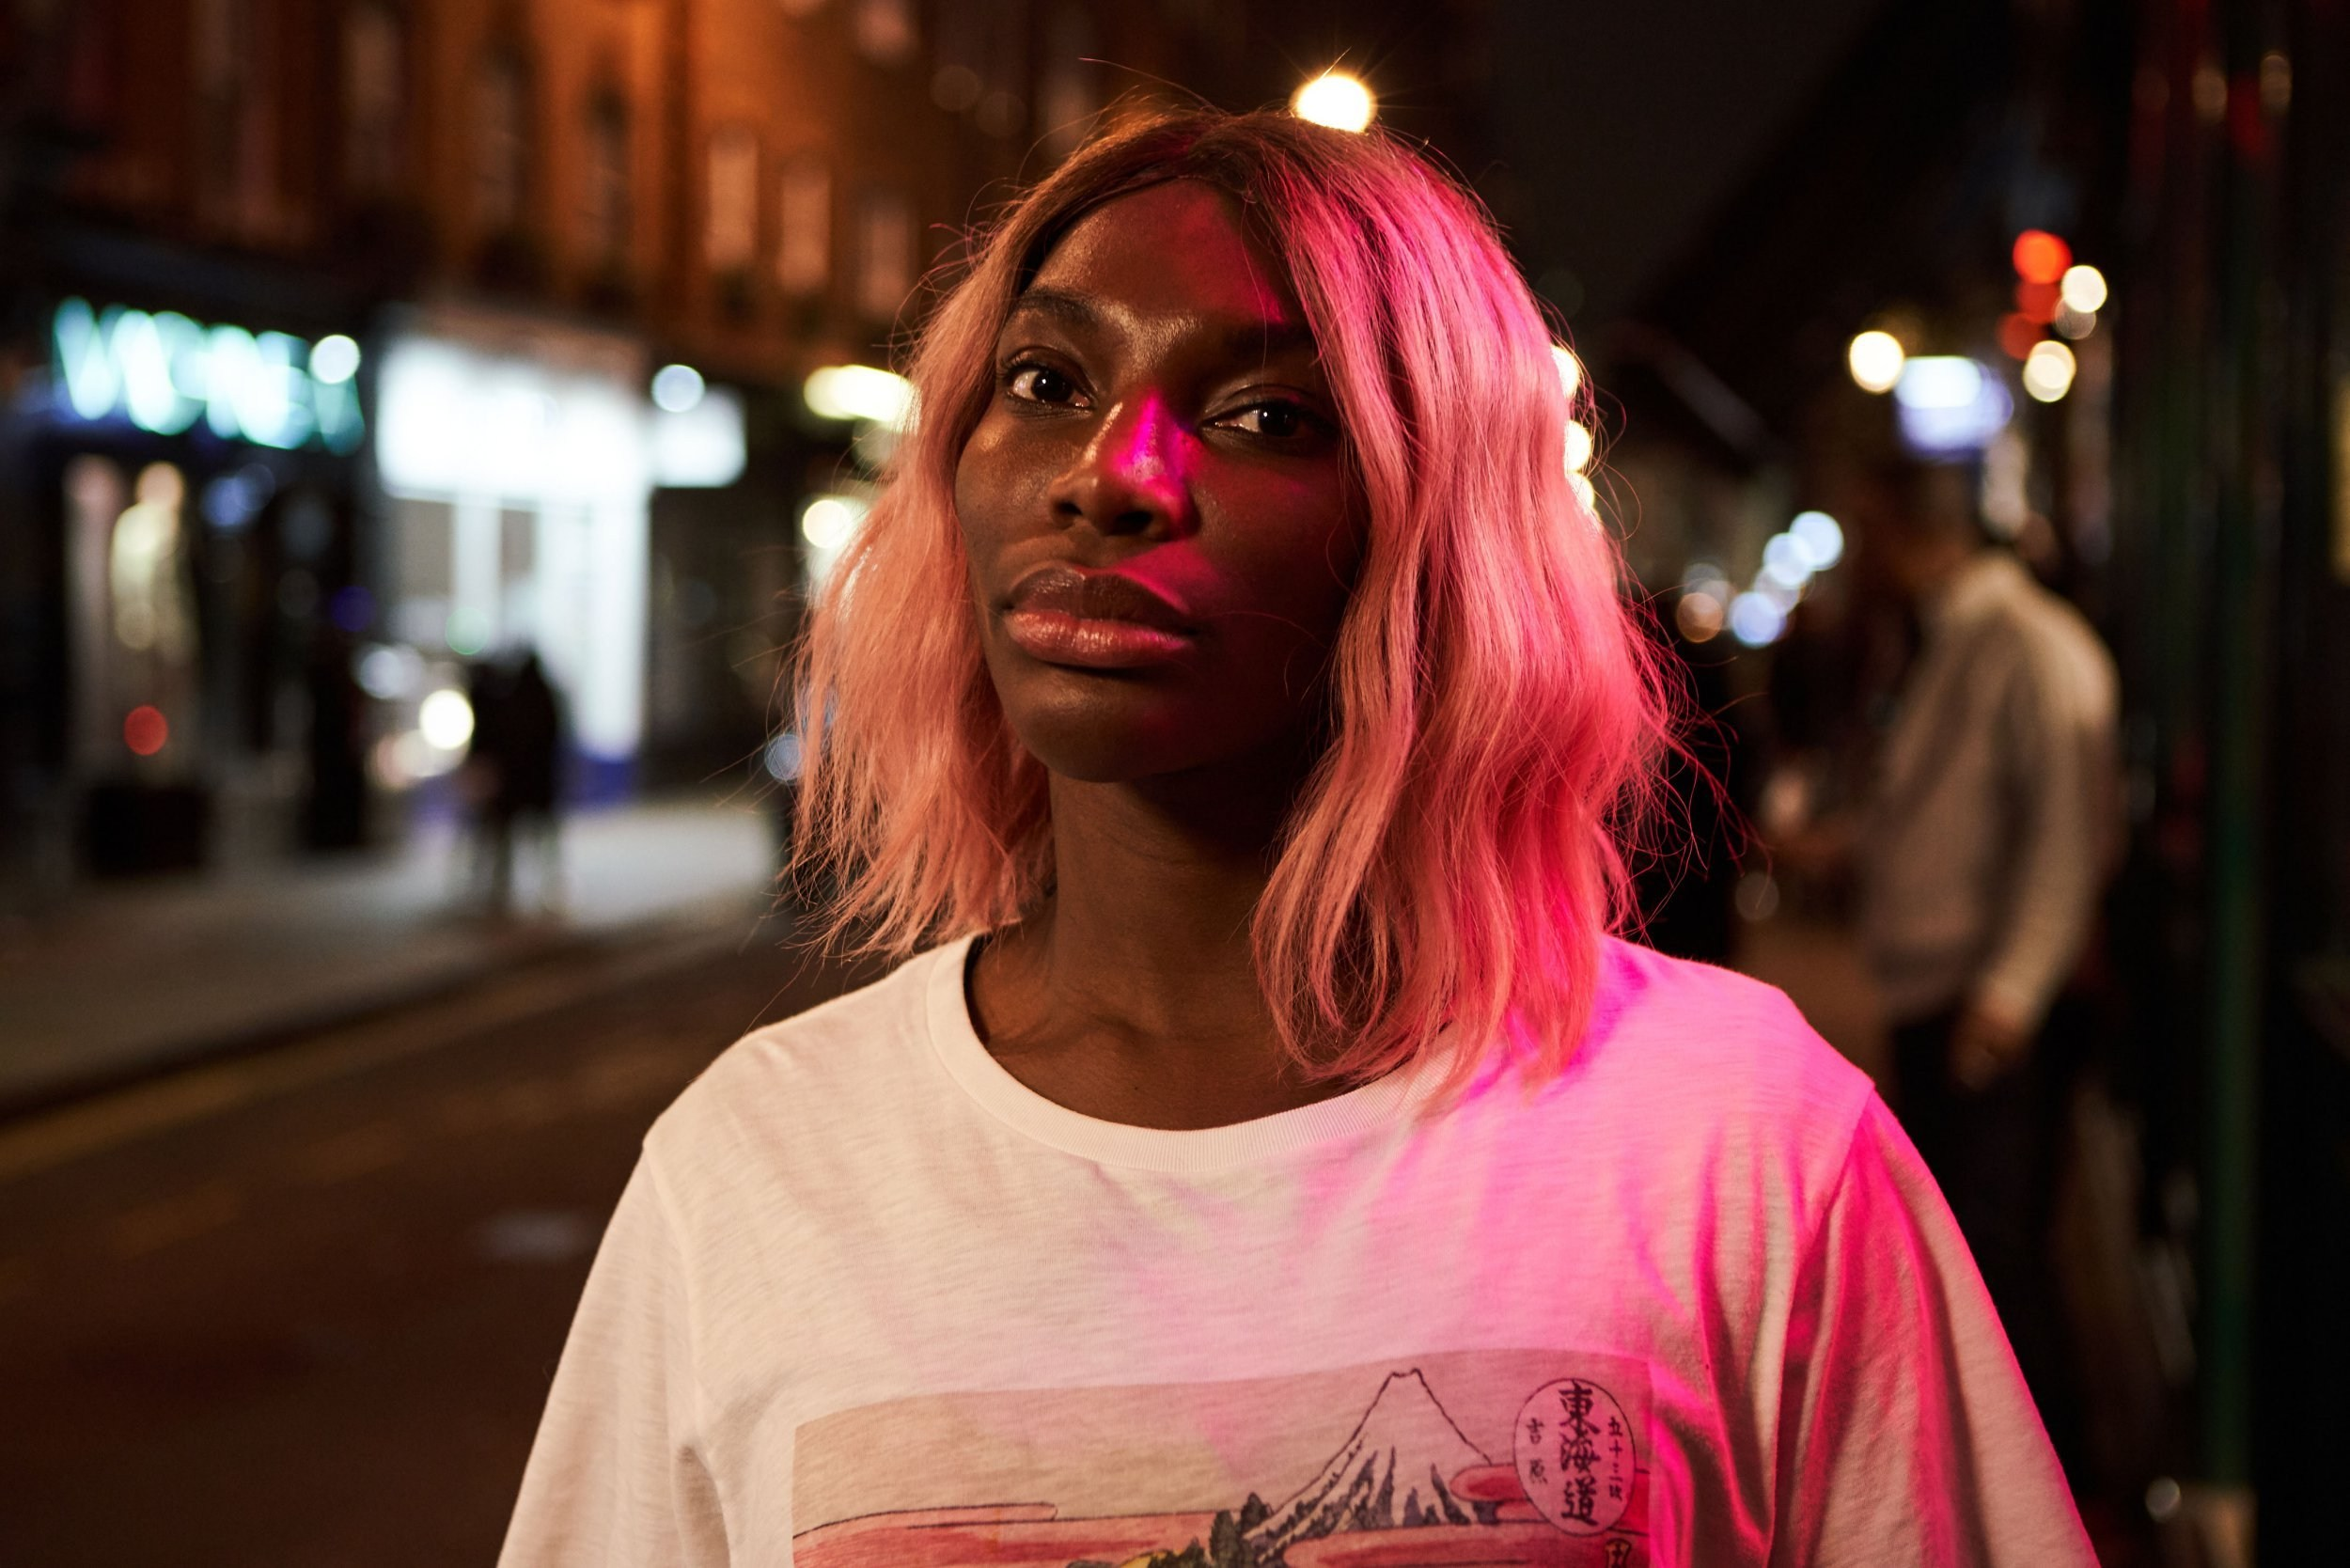 Michaela Coel's sexual consent drama I May Destroy You inspired after spiking incident